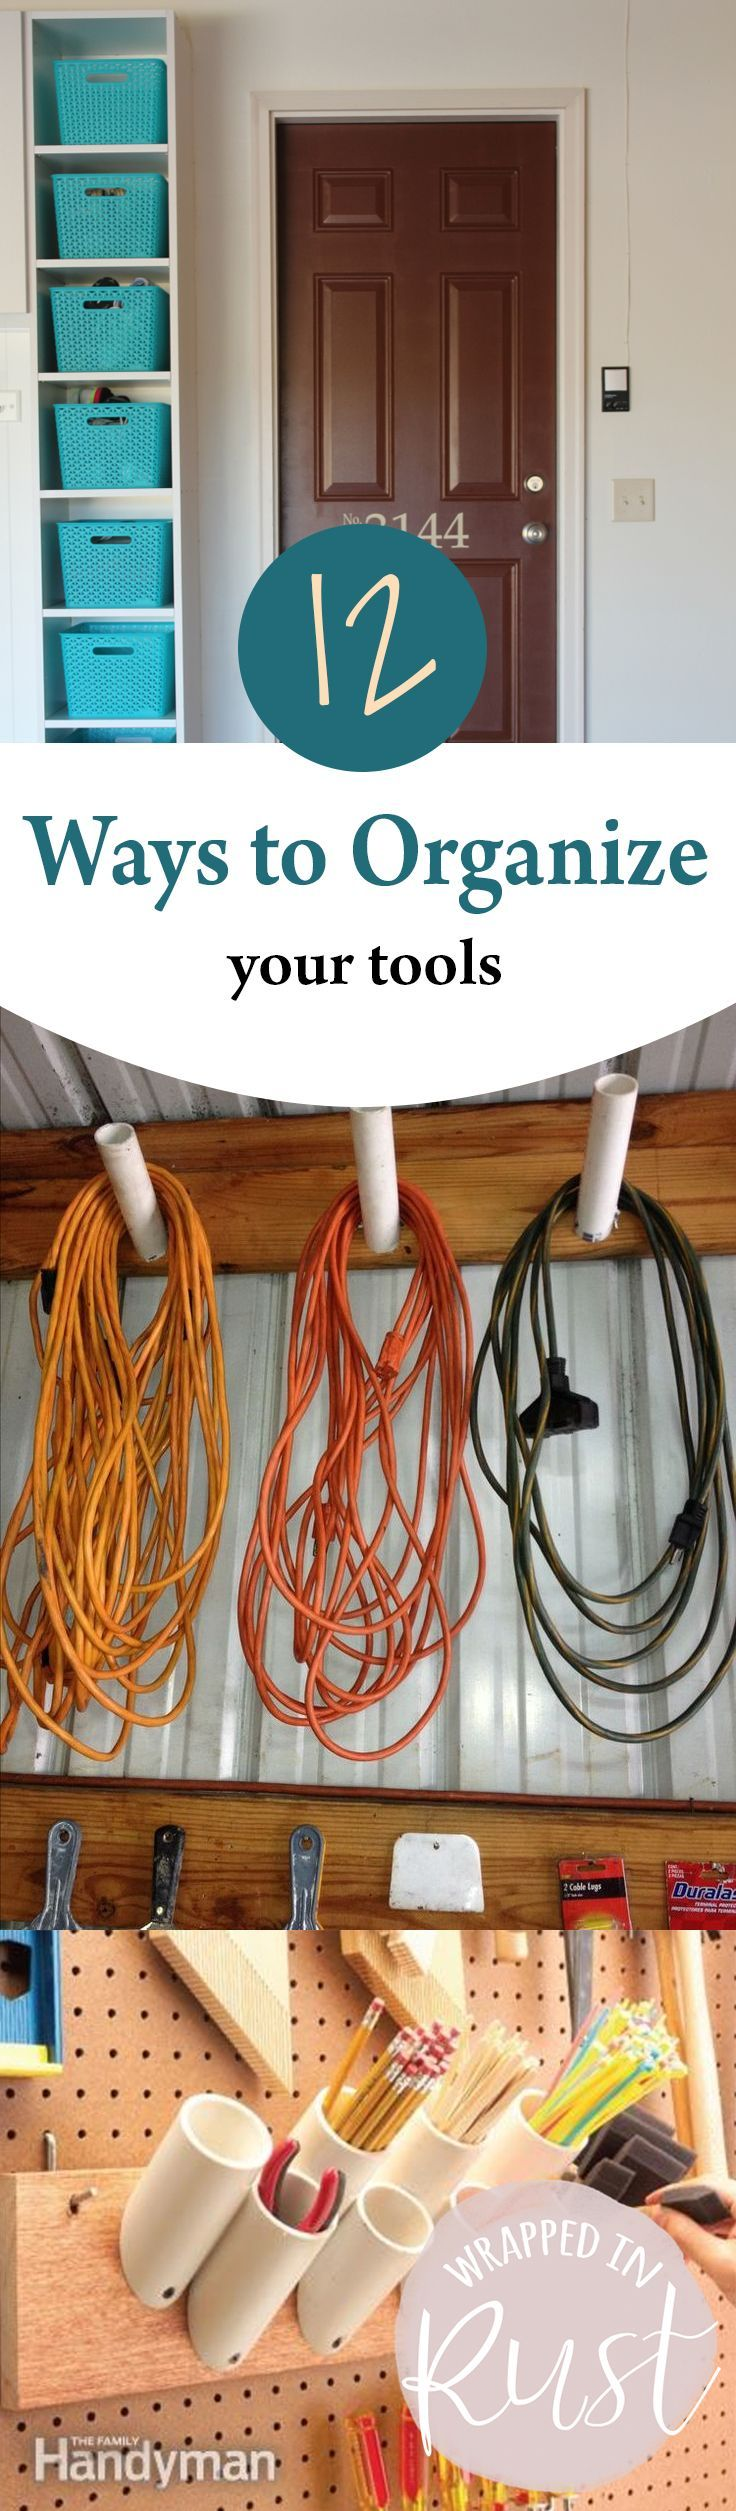 How to organize and store your tools.